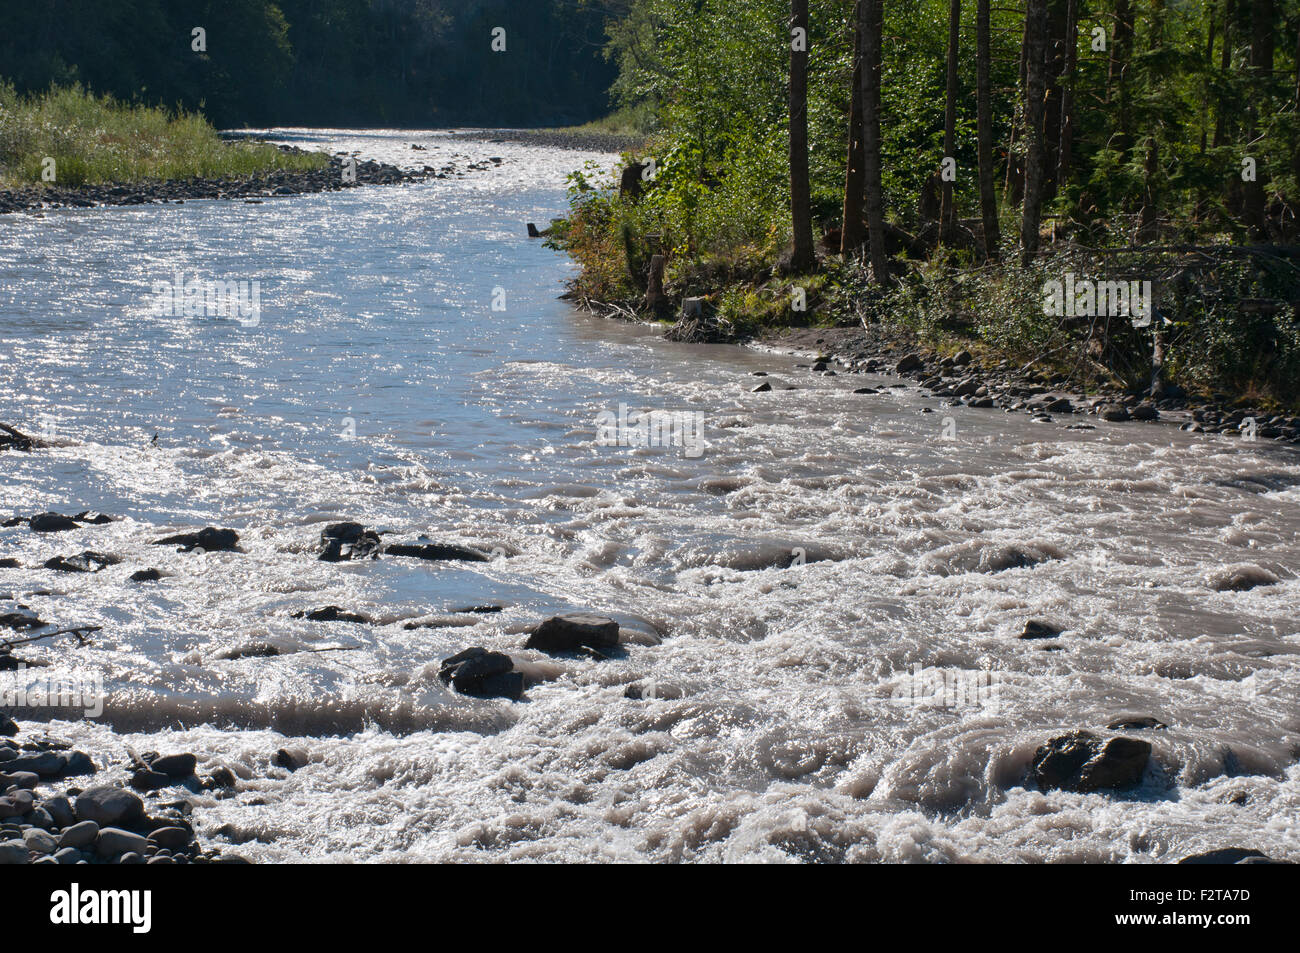 White River, Washington State, USA, de l'eau, de courbe Photo Stock